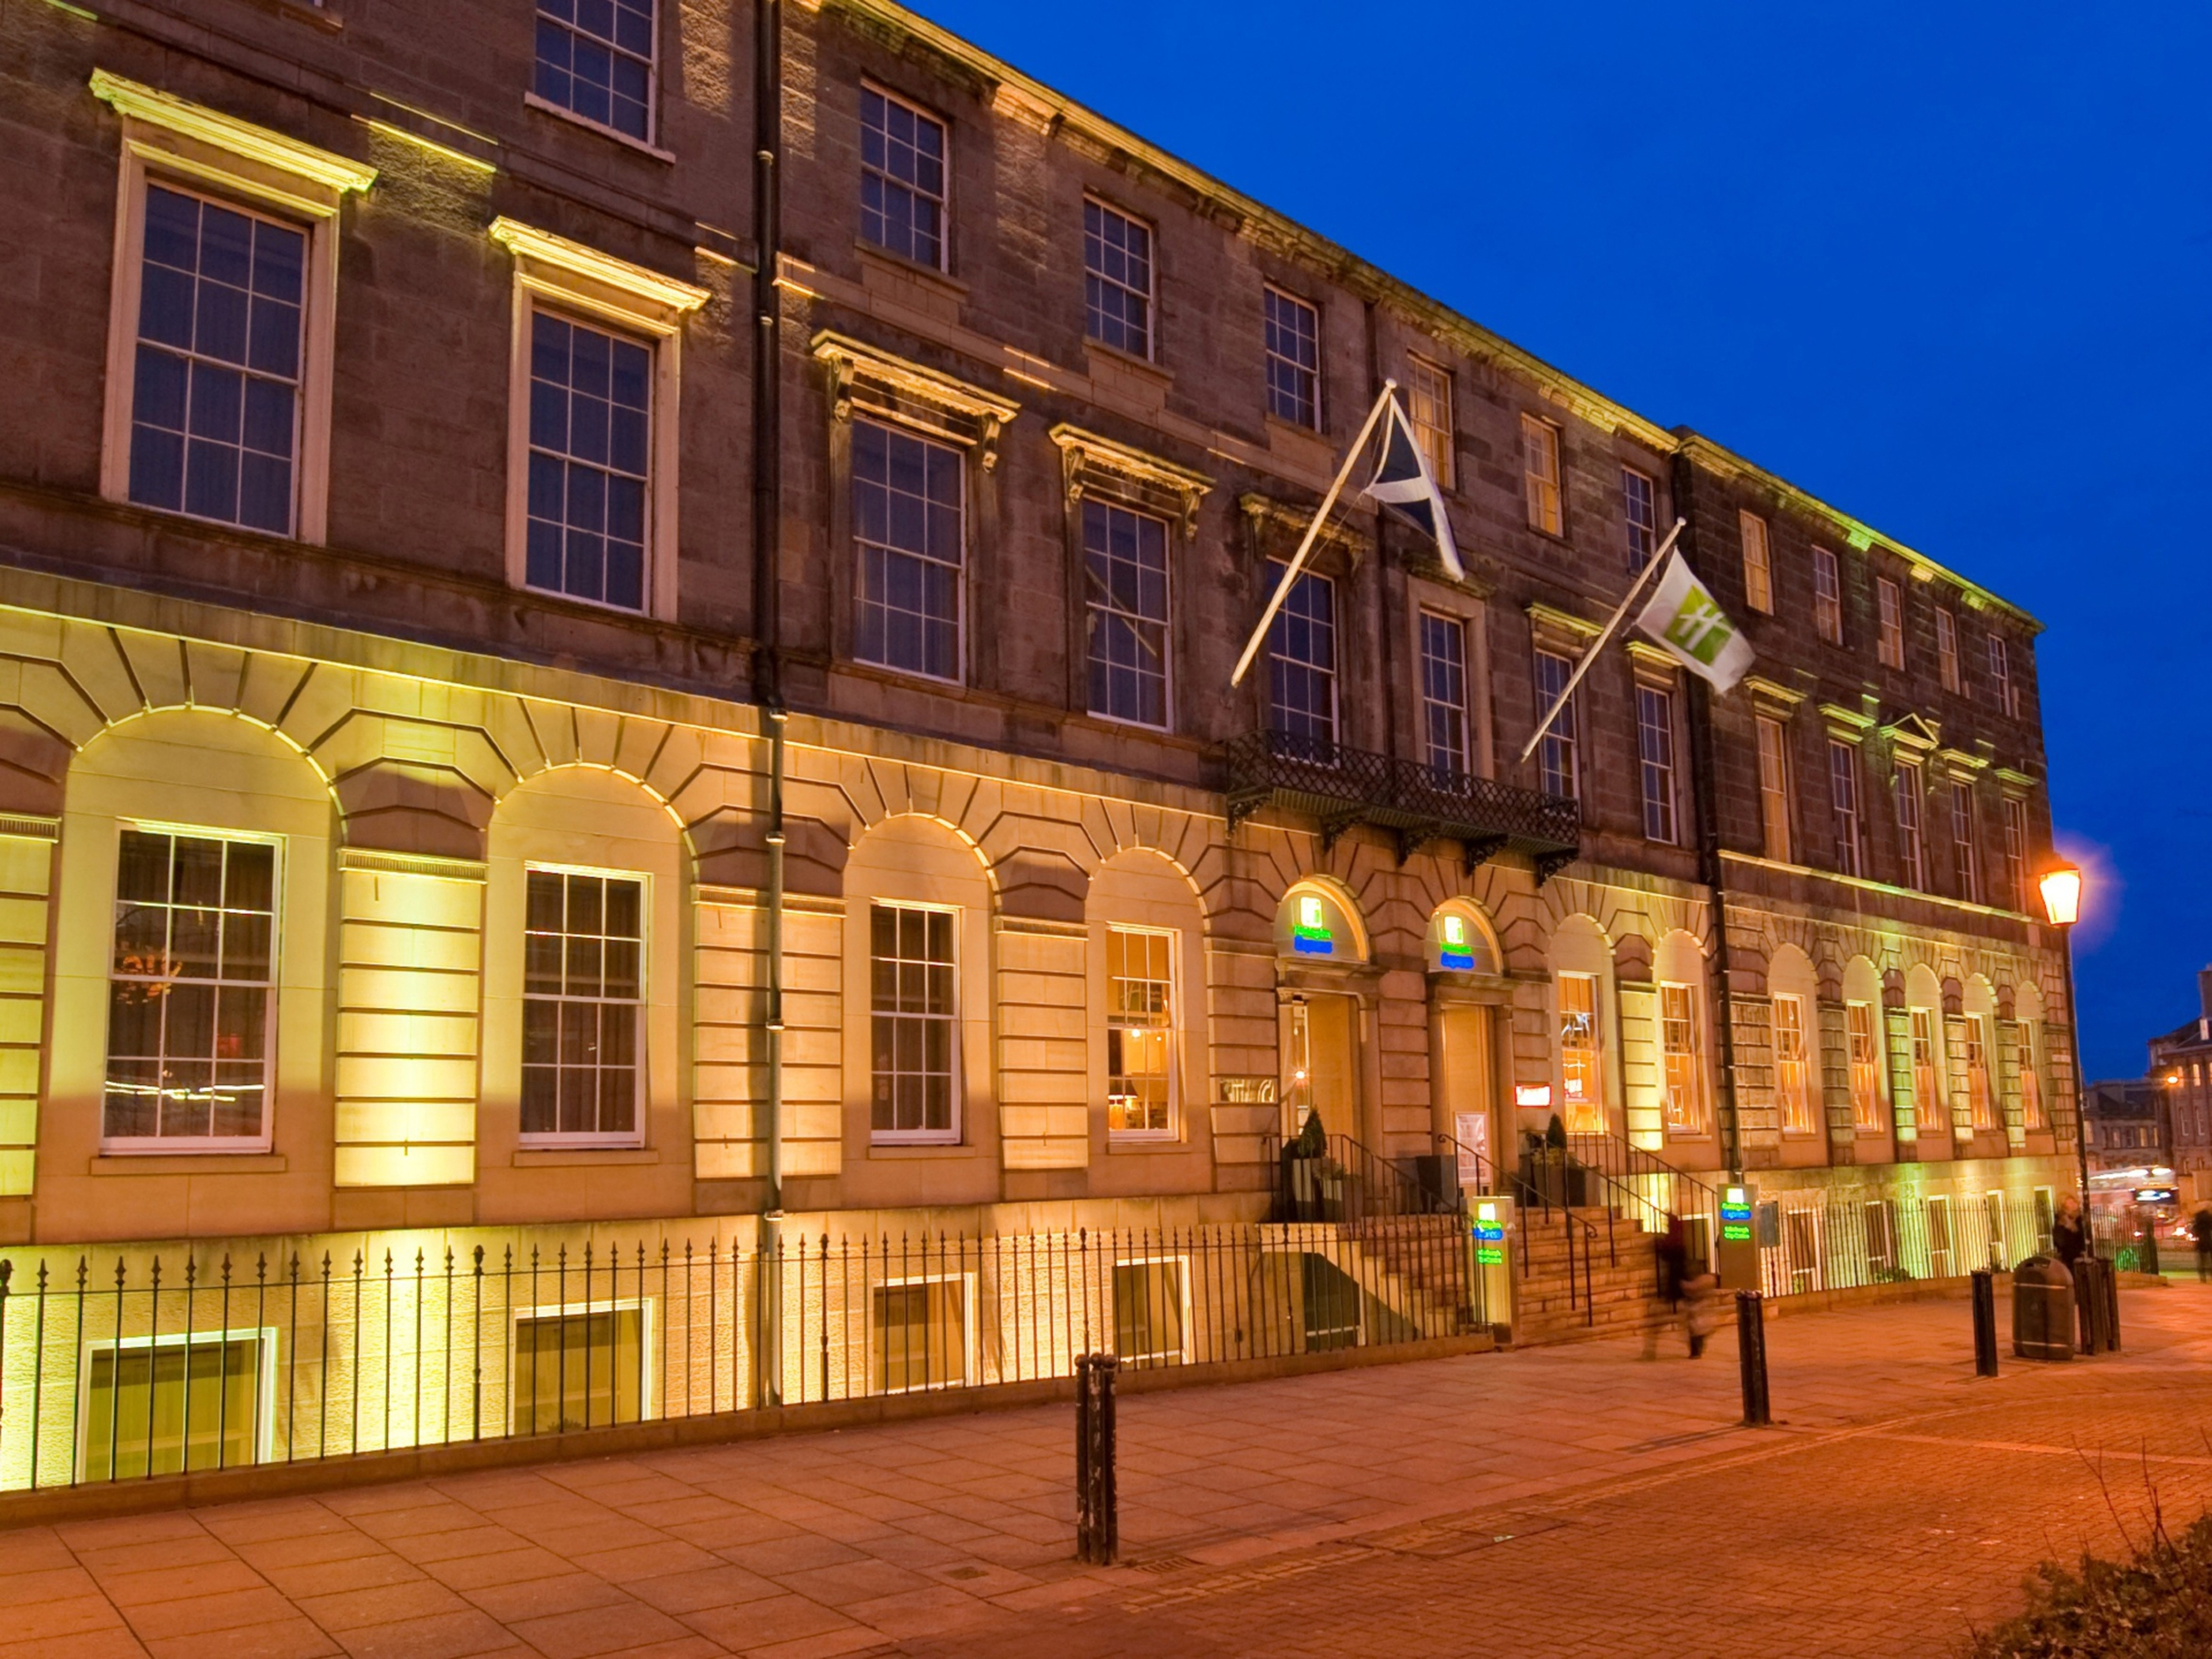 Holiday Inn Express Edinburgh city centre has been sold for £17.7 million.